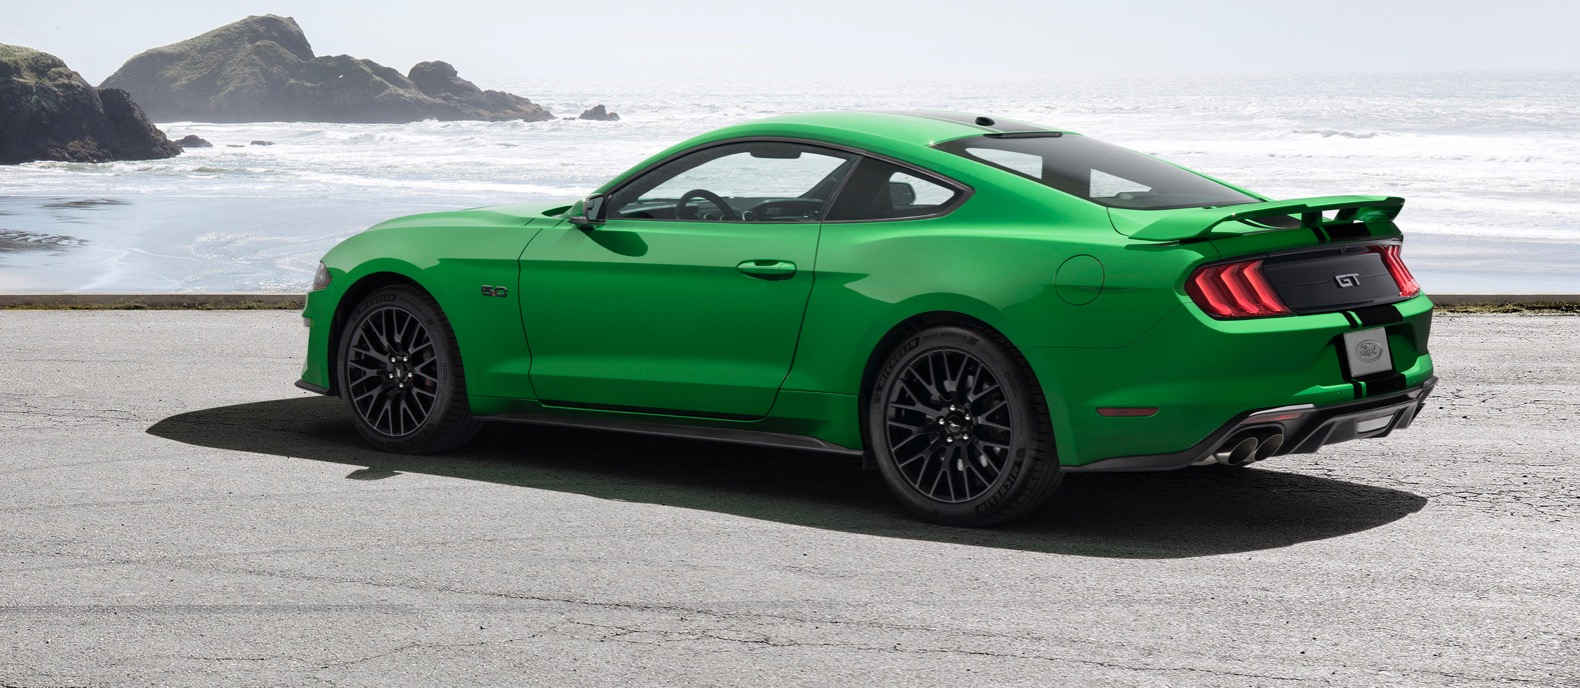 2019 Ford Mustang Gt Review A Modern Muscle Car The